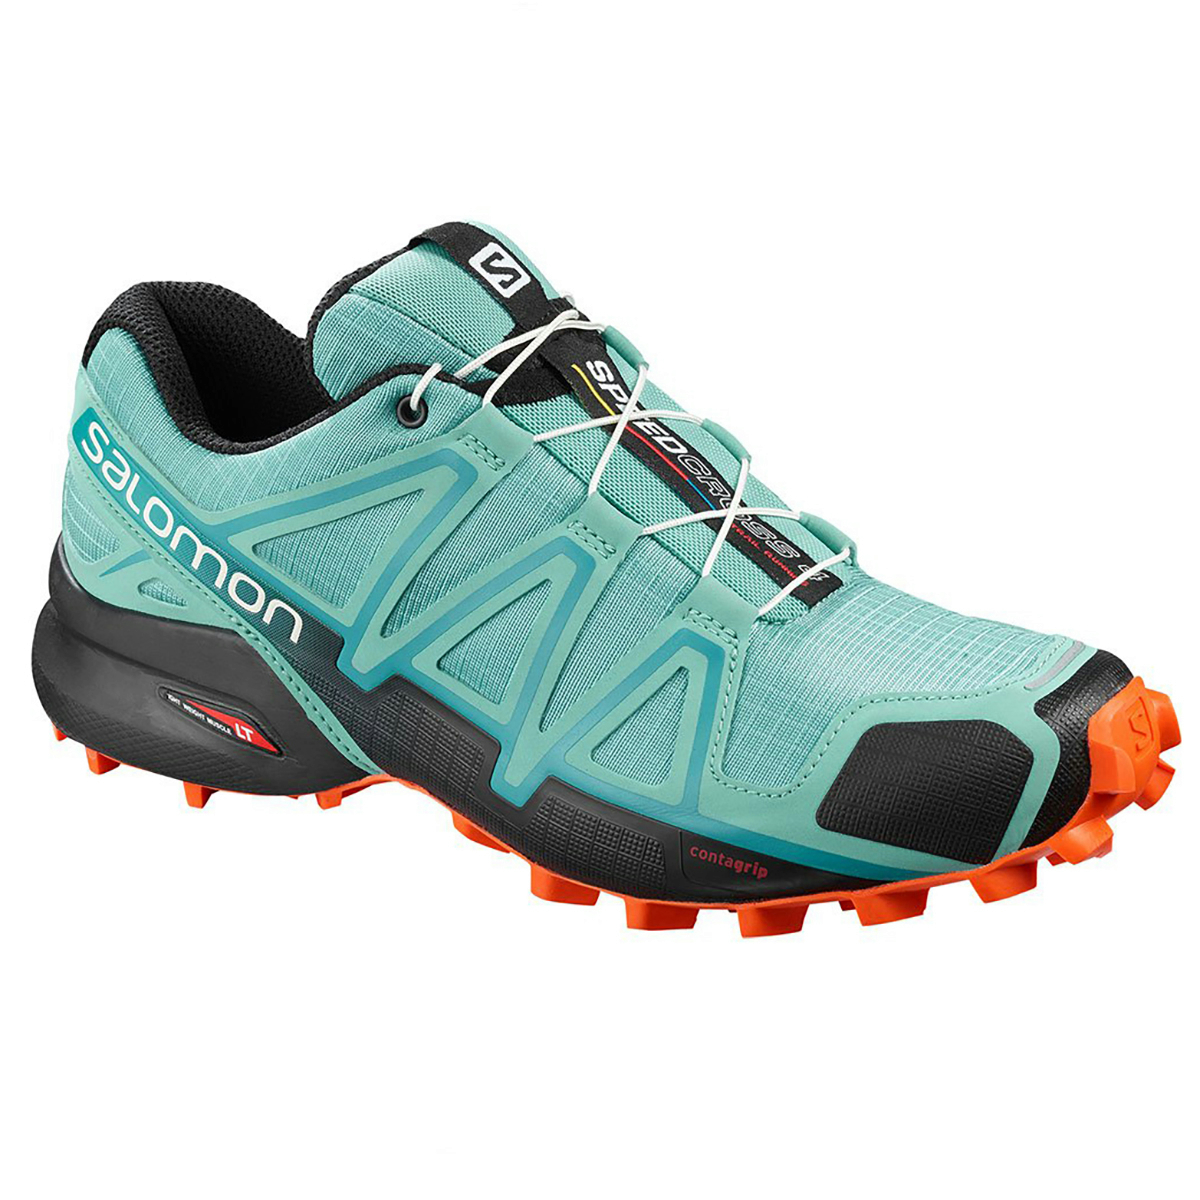 Salomon Speedcross 4 W gecko greenspectrum blueblack ab 99